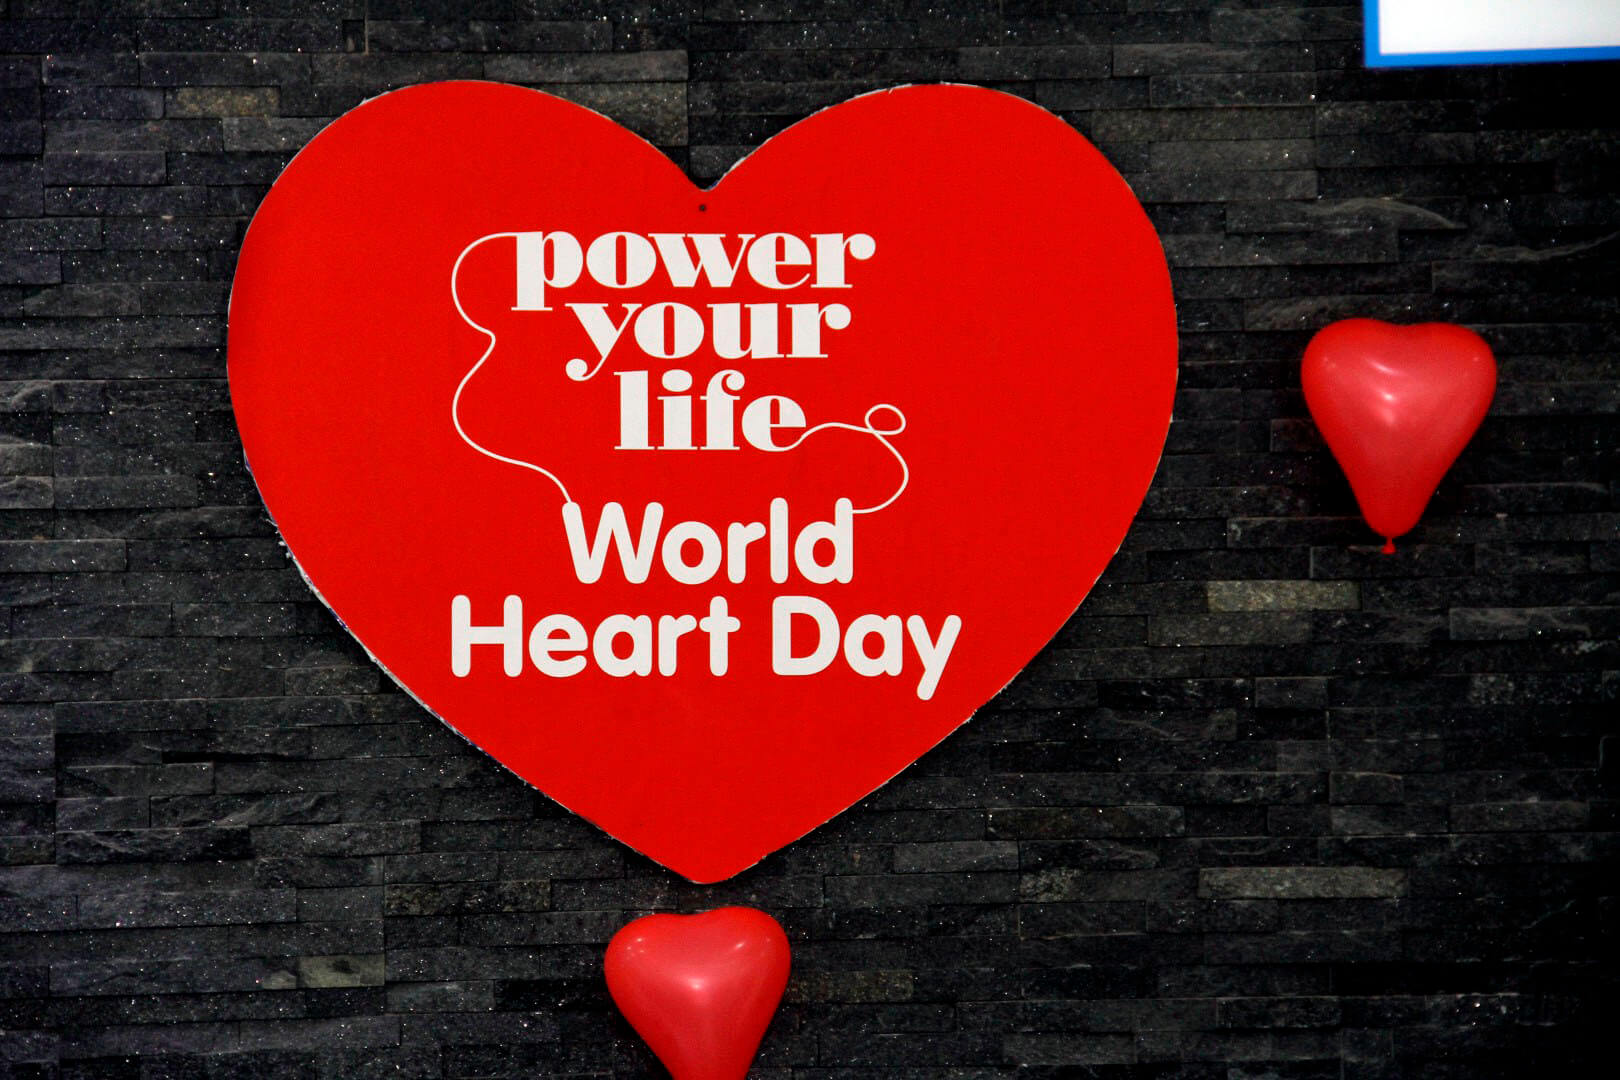 world heart day power your life picture image pc mobile wallpaper